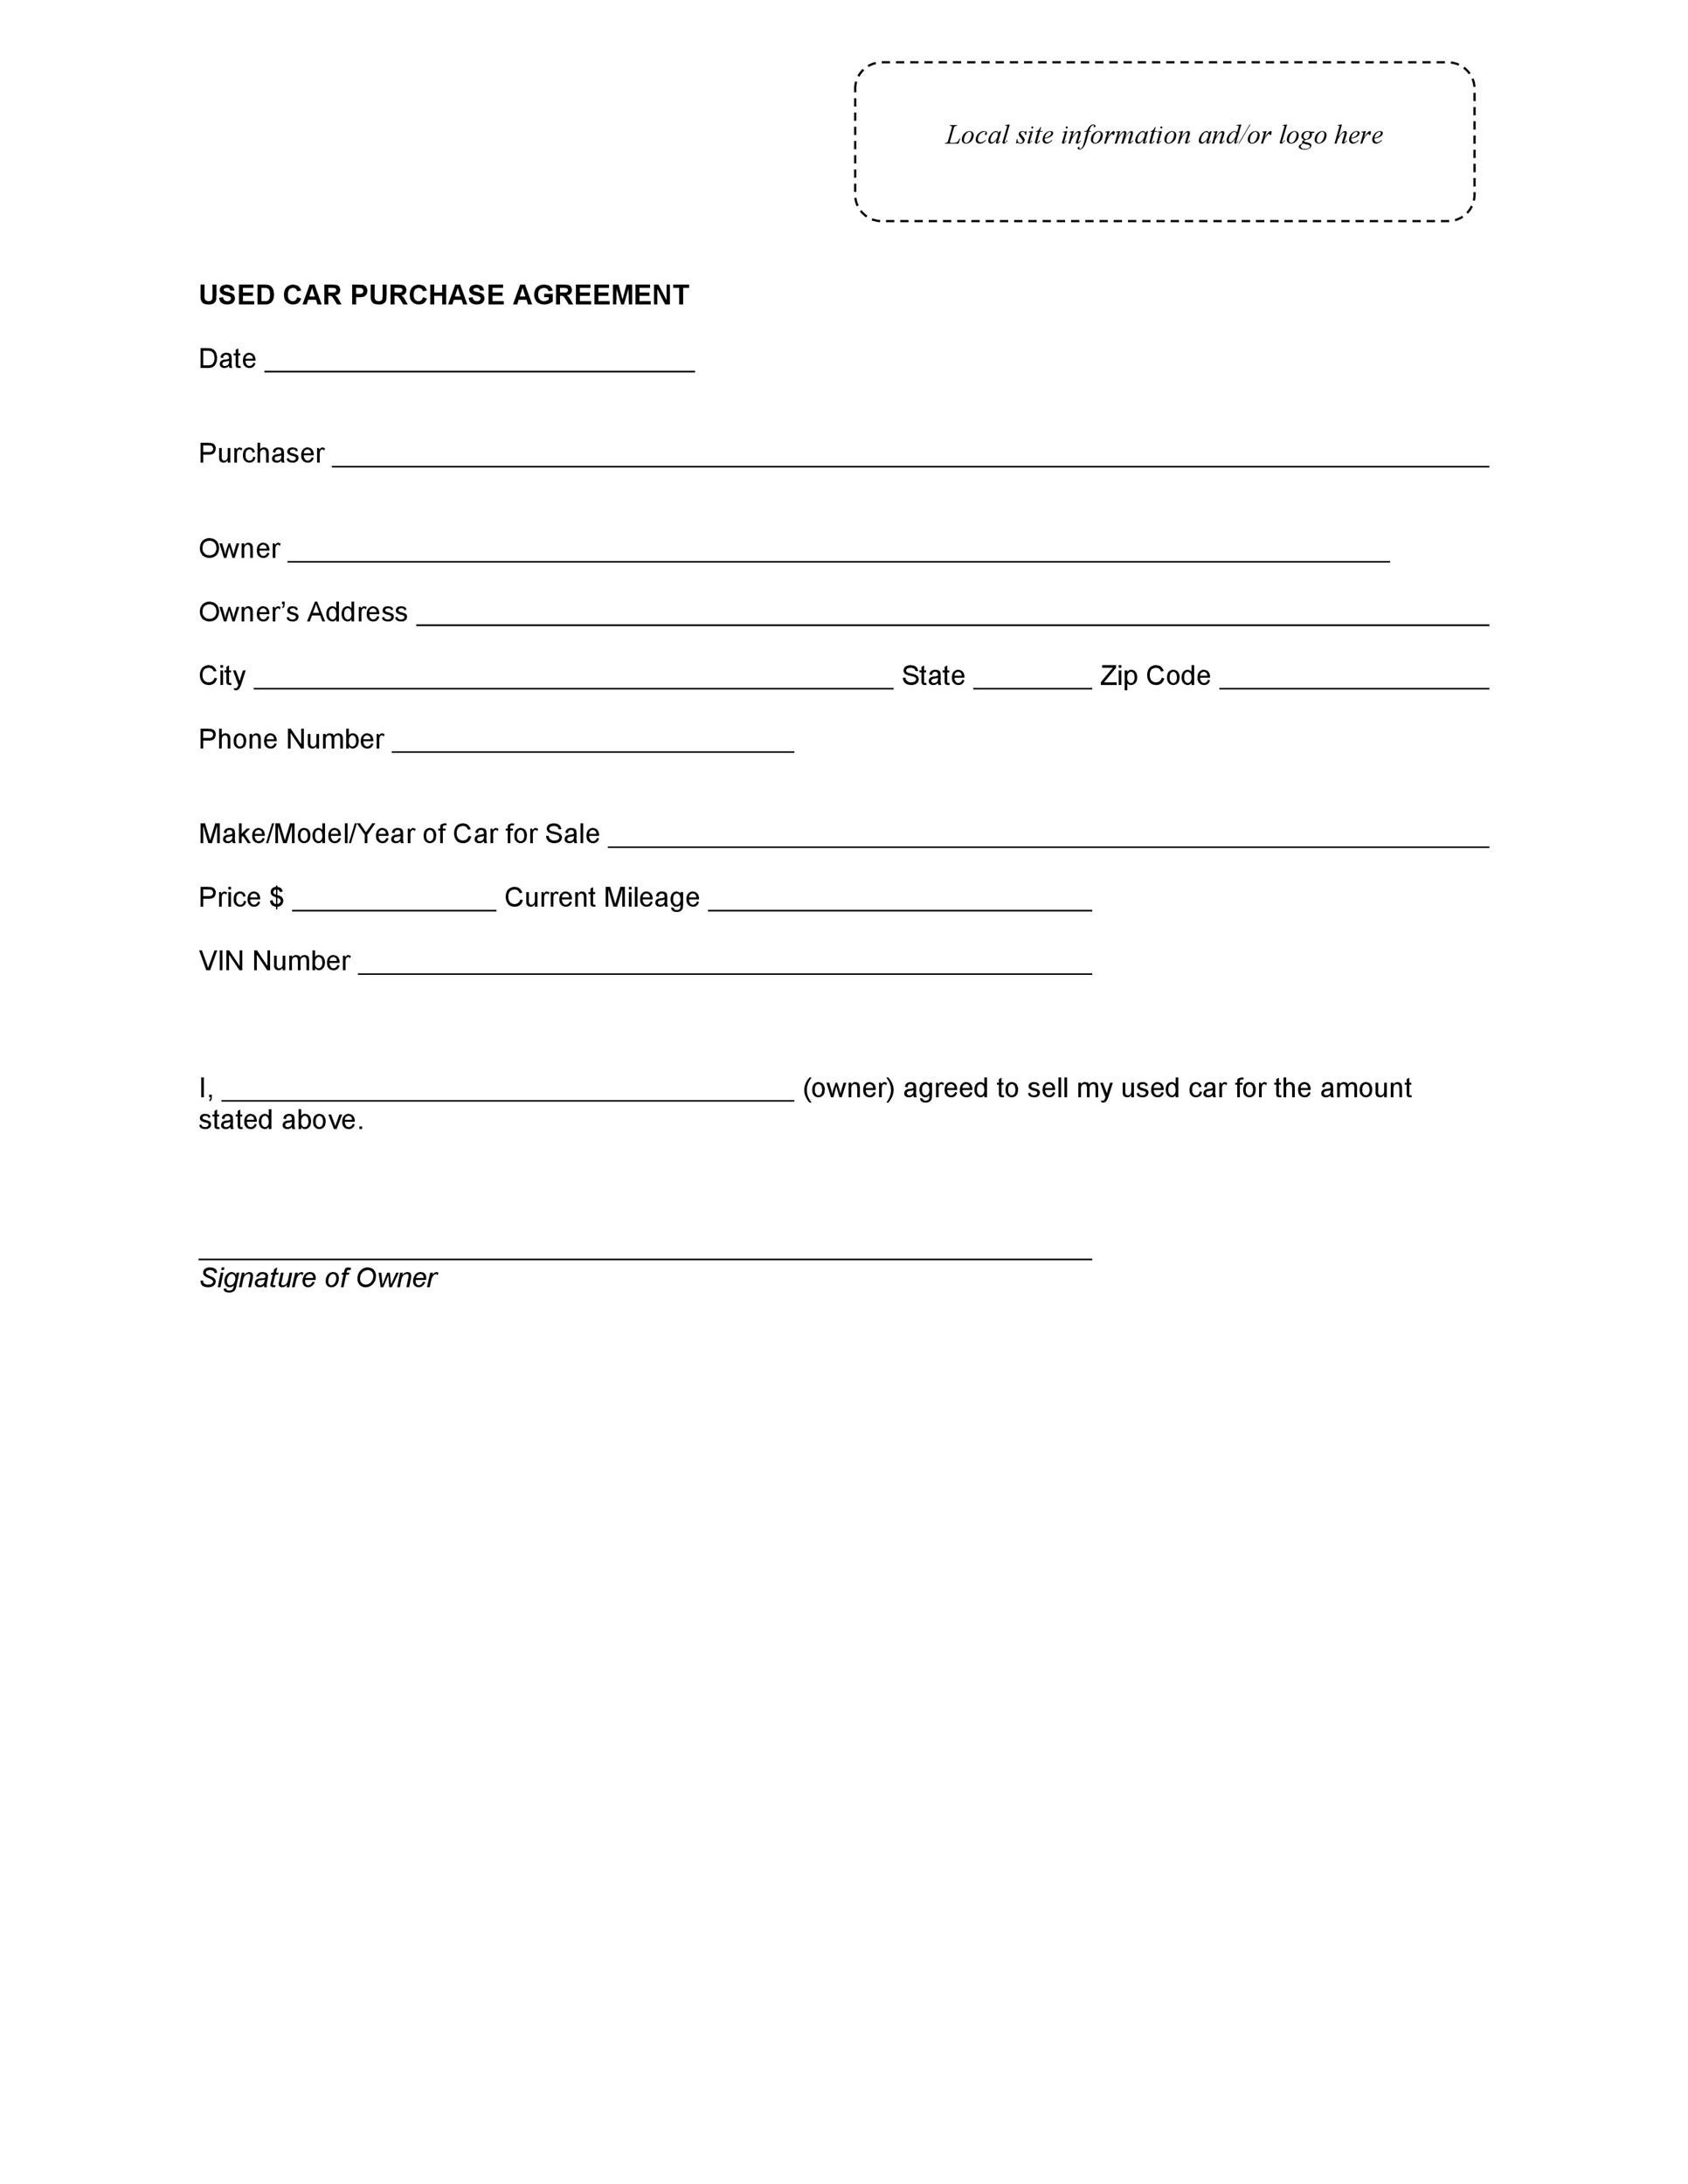 Printable Vehicle Purchase Agreement Templates  Template Lab